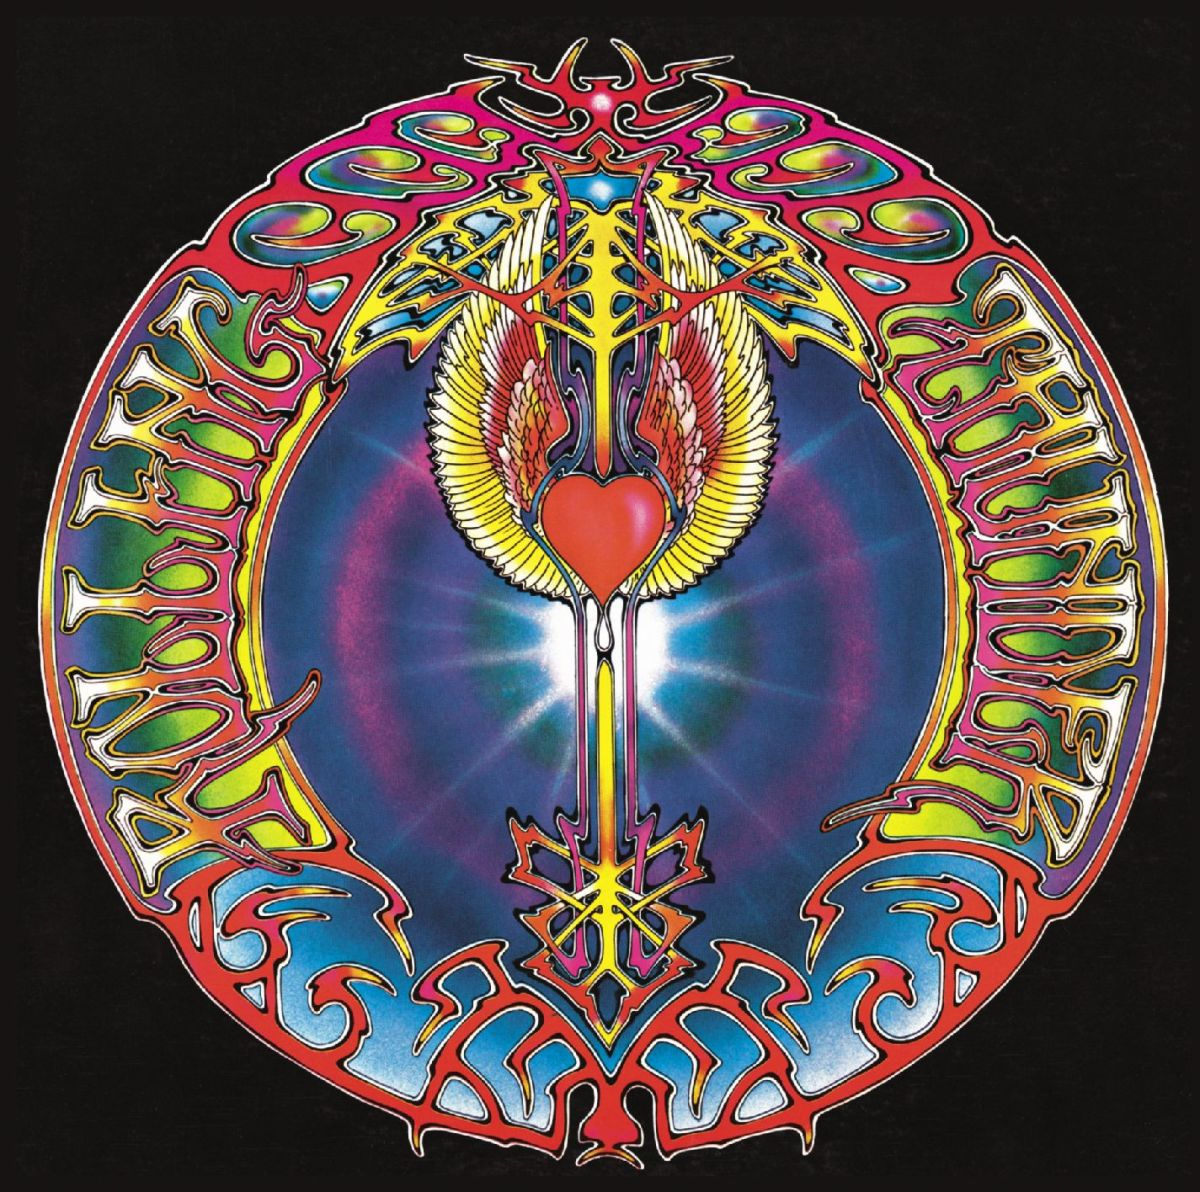 "Mickey Hart ""Rolling Thunder"" Warner Brothers Records BS 2635 12"" LP Vinyl Record (1972) Album Cover Art Alton Kelley & Stanley Mouse"